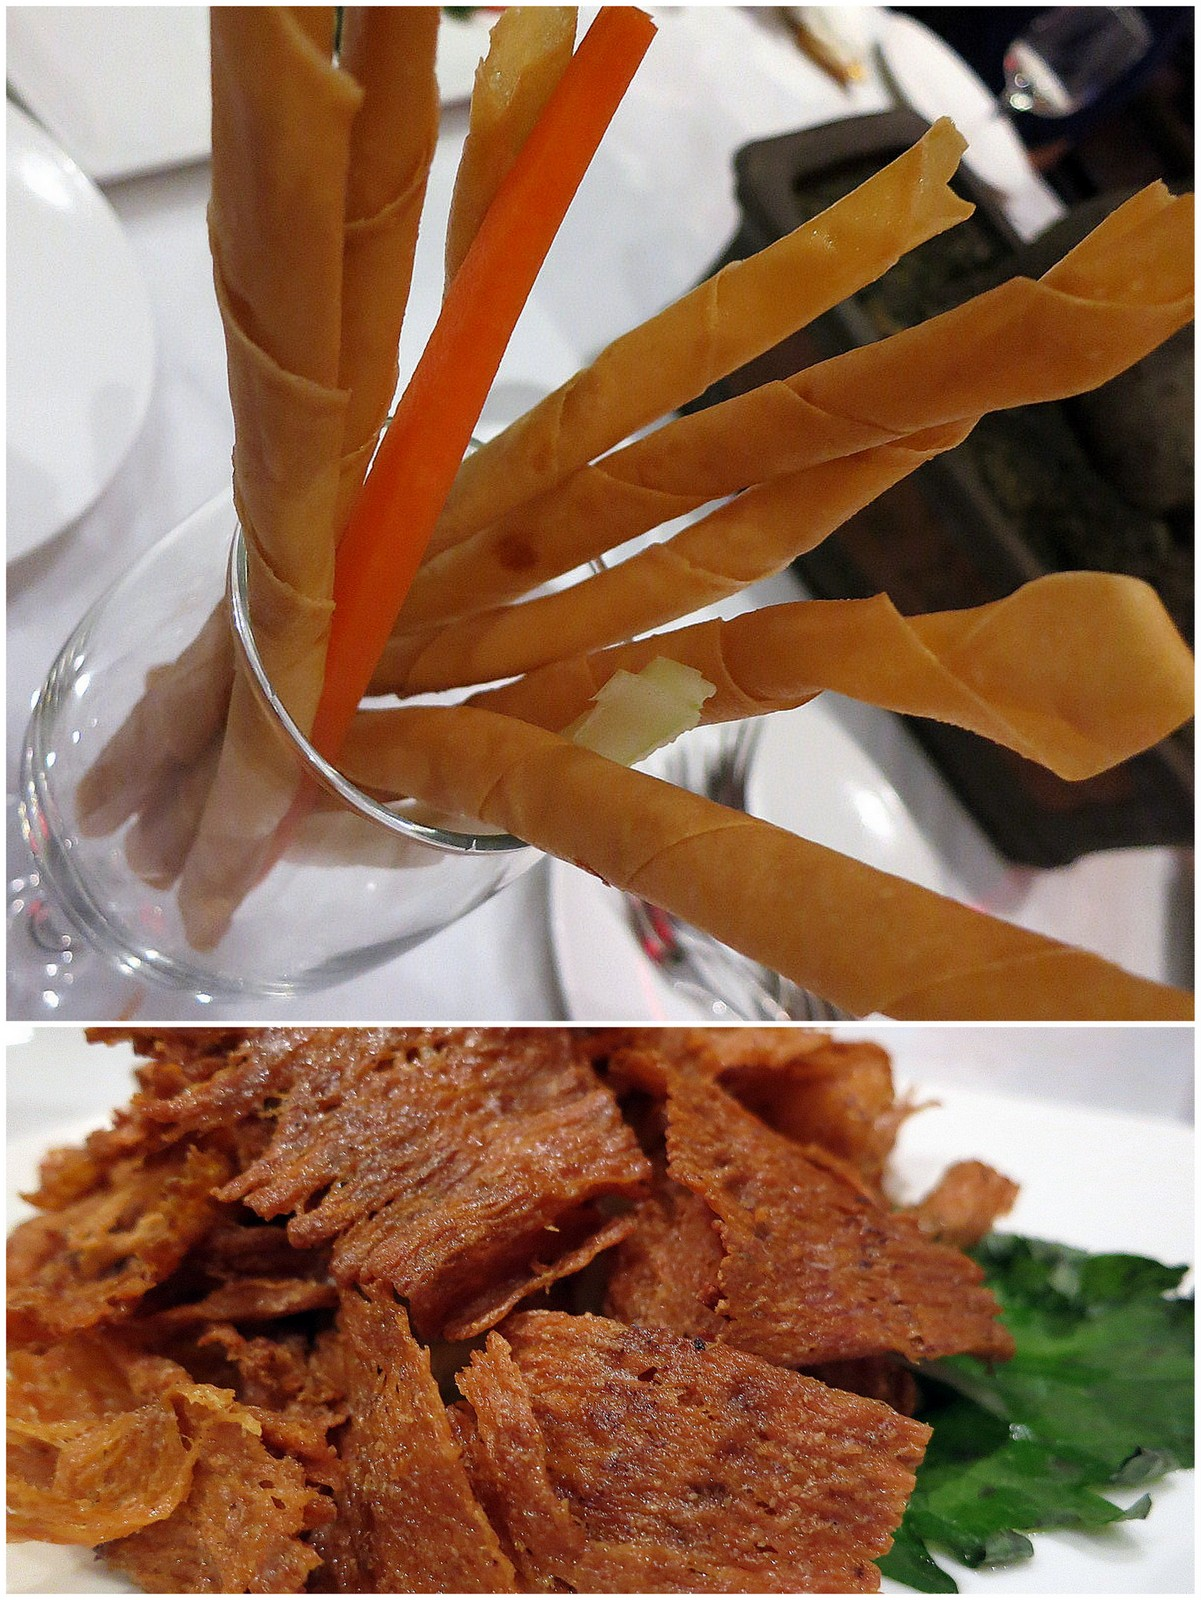 as well as wonton skin-wrapped salmon flakes & cuttlefish crackers ...